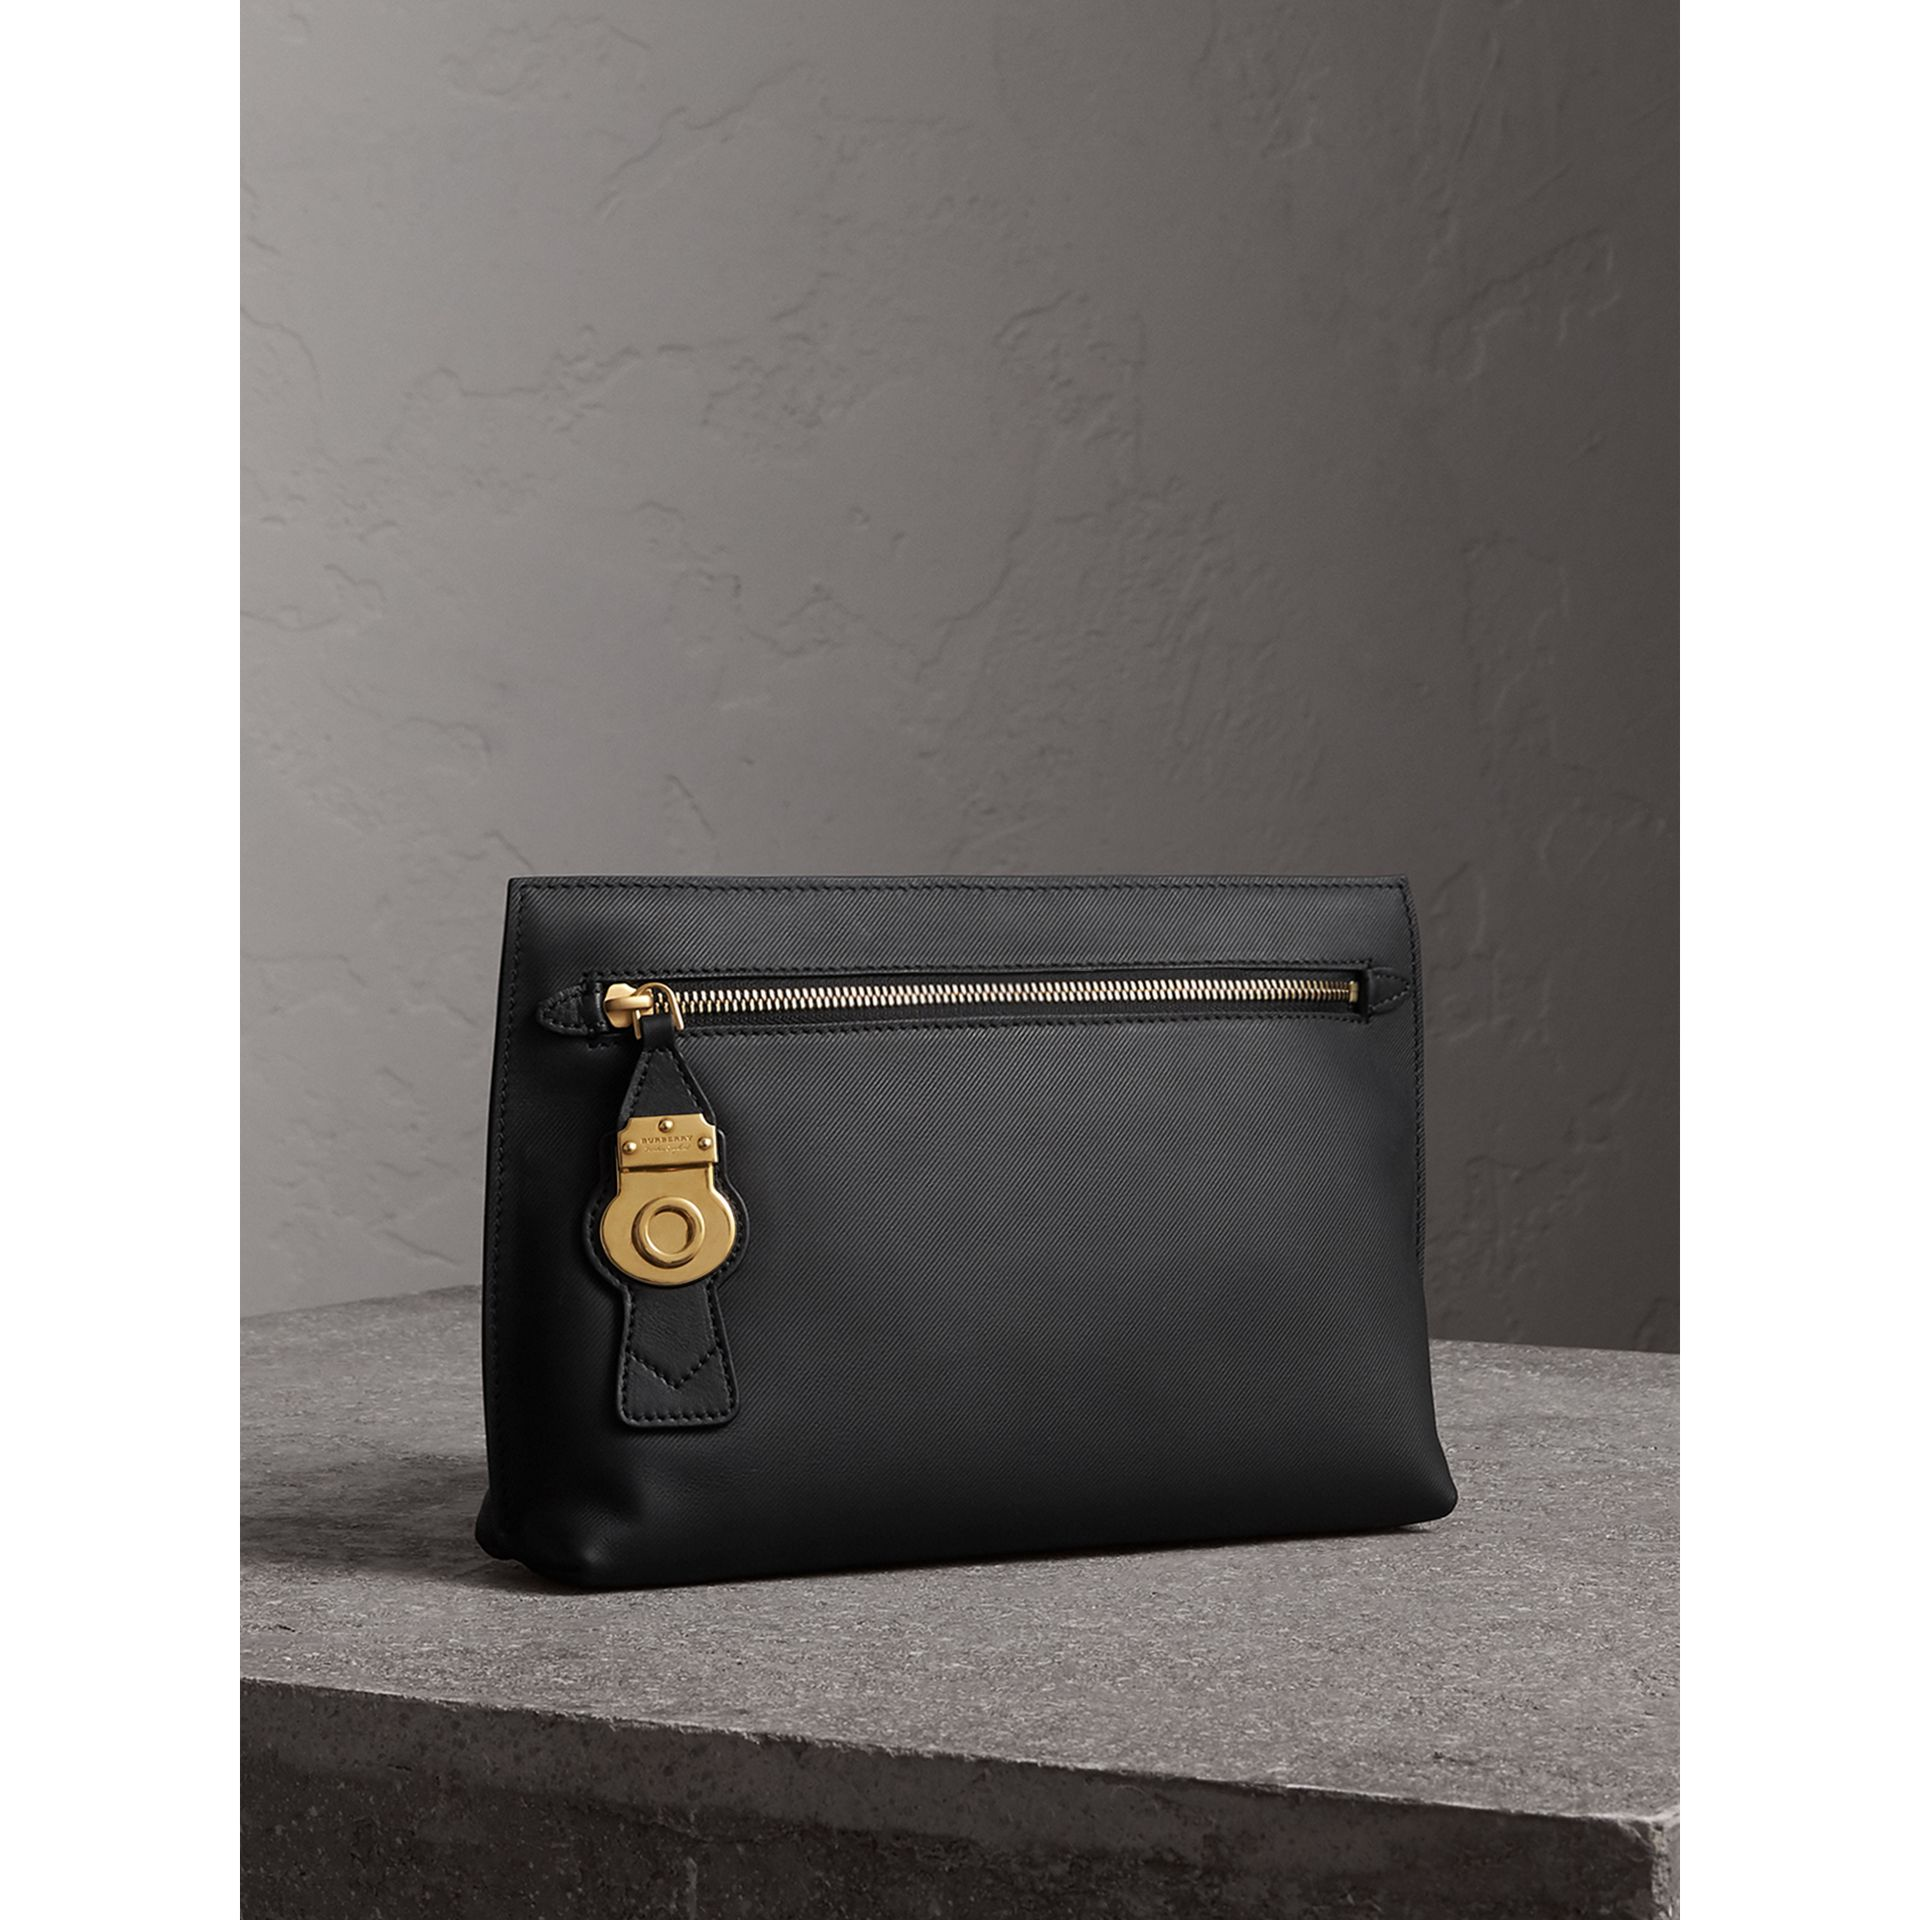 Trench Leather Wristlet Pouch in Black - Women | Burberry United States - gallery image 5